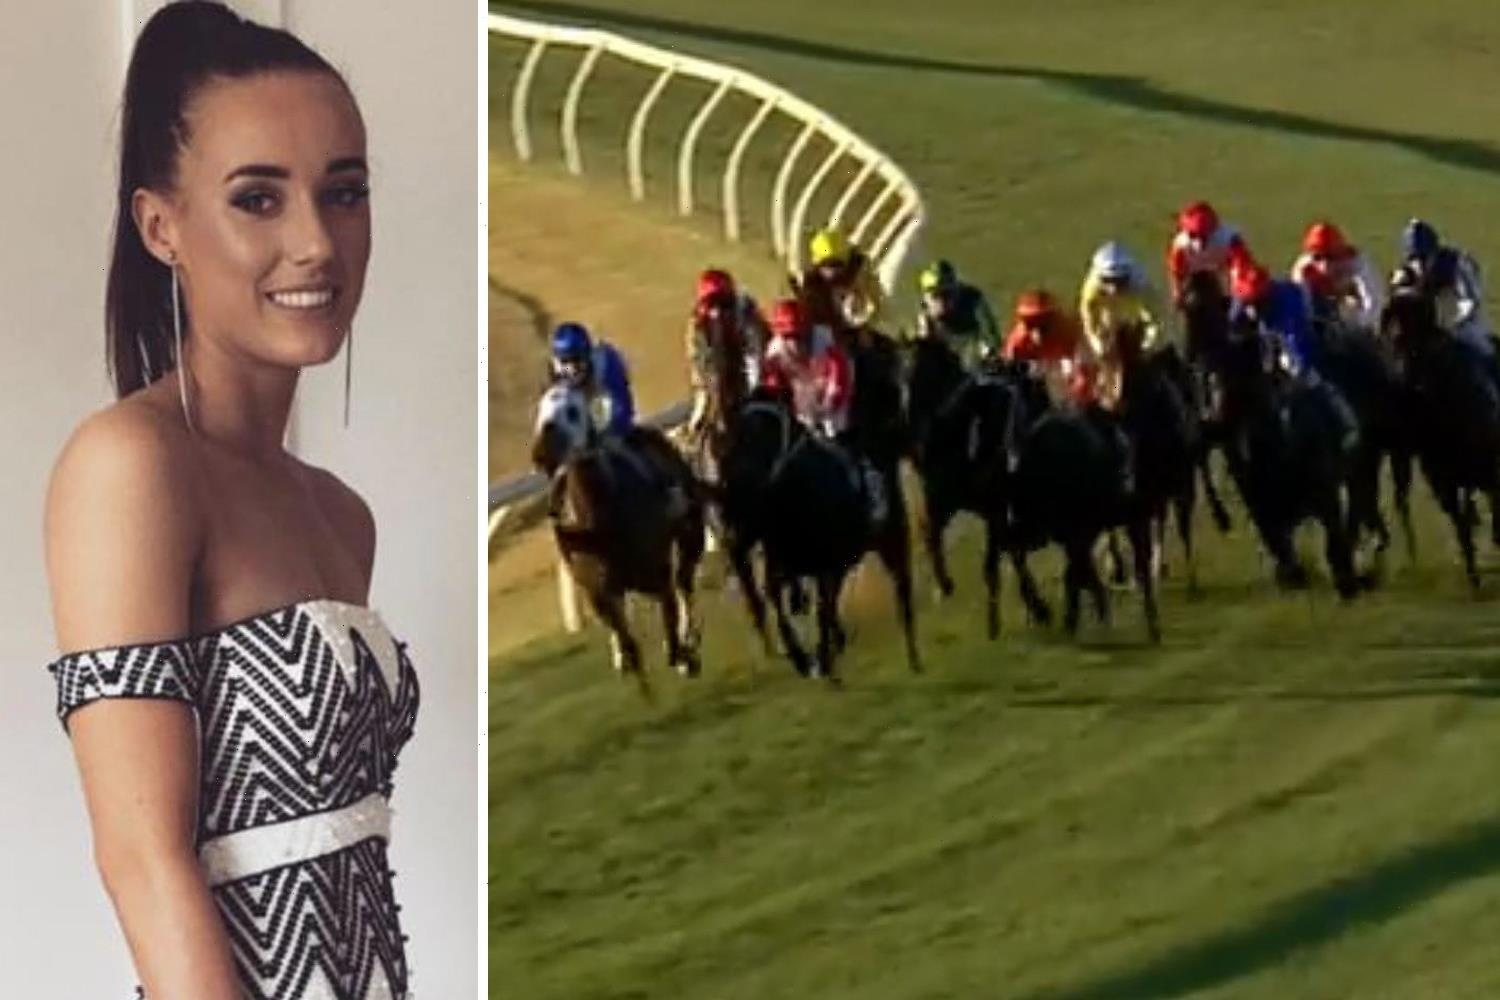 Female jockey Laura Lafferty, 22, rushed to hospital after leading horse crashes through barrier and rolls on top of her